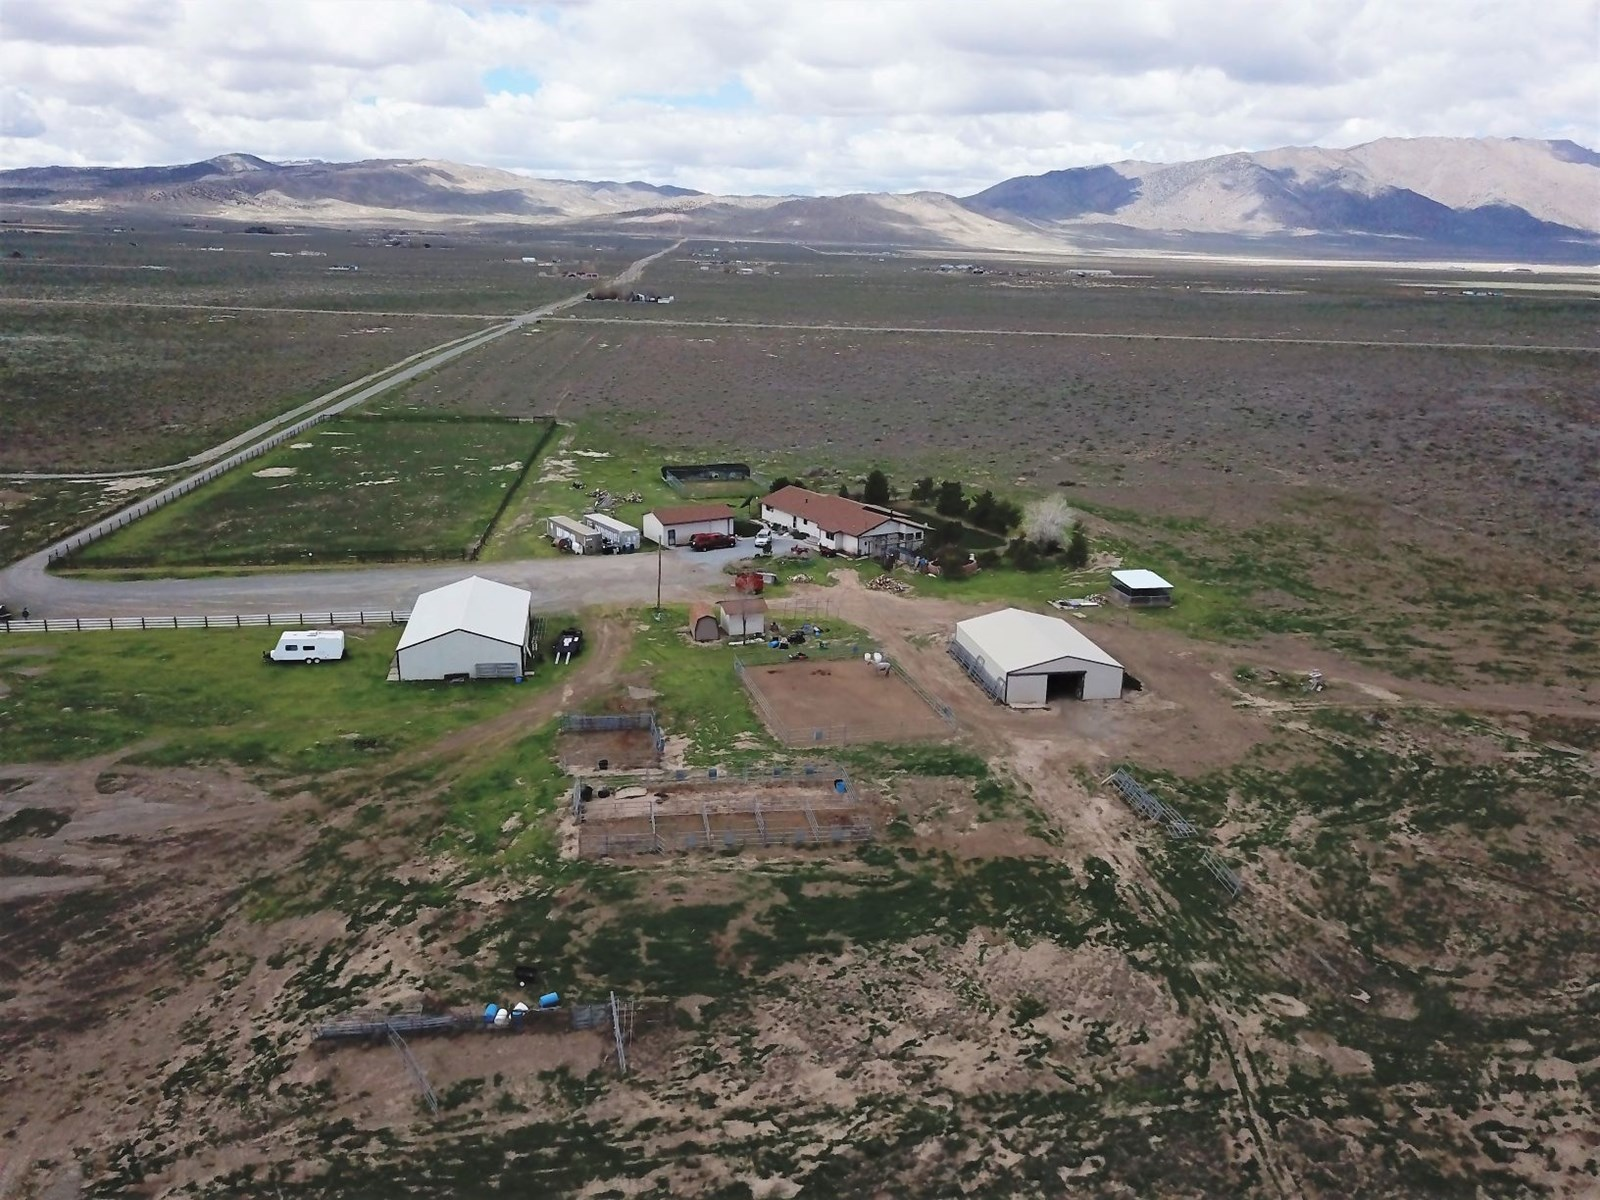 Horse Property/Ranch, Hemp Land For Sale Reno, Nevada